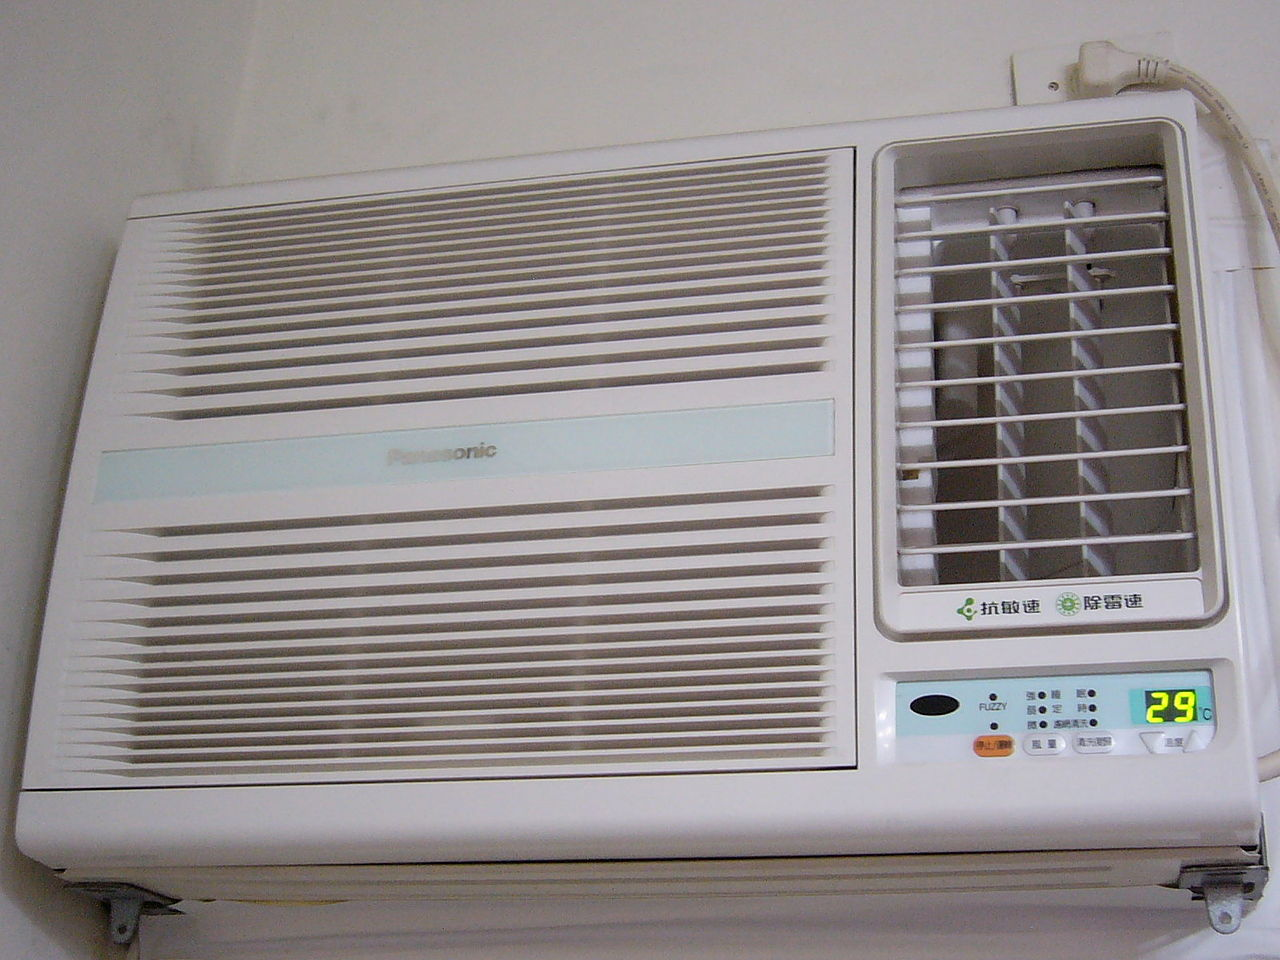 Home Air Conditioner Units Air Conditioning System Archives Rvlarvla